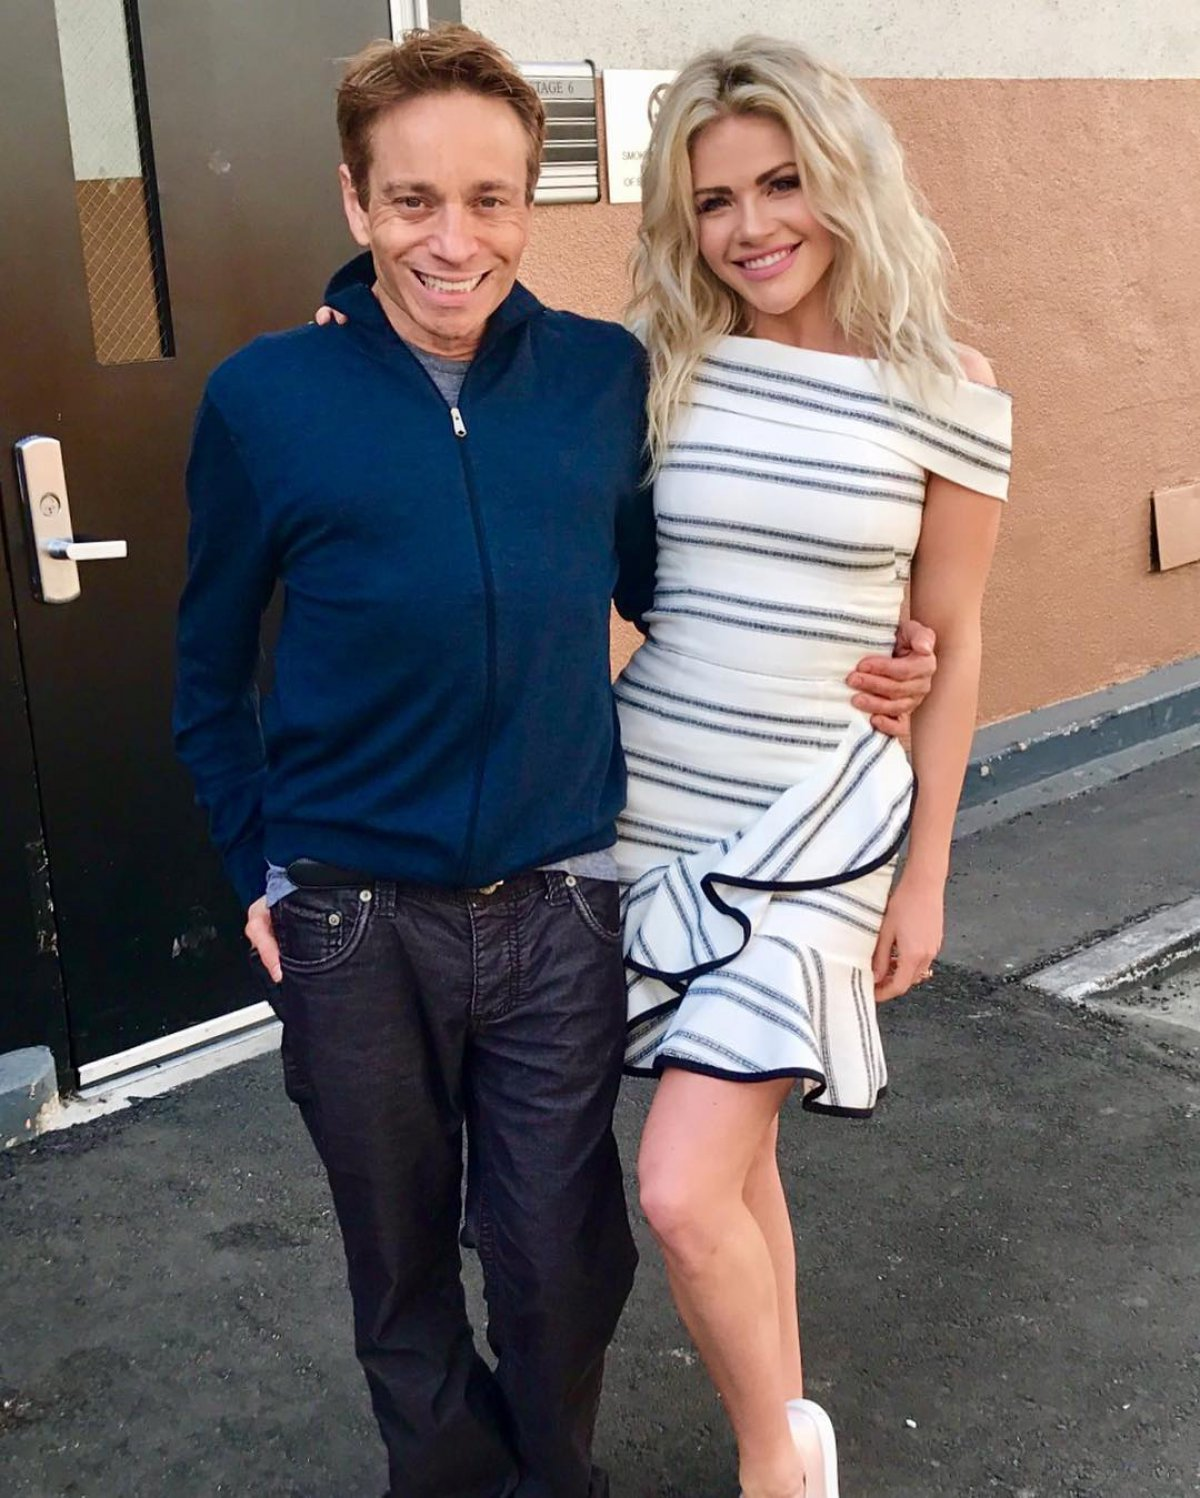 Story Dancing With The Stars Kym Johnson And Robert Herjavec Welcome Twins: Chris Kattan -- 5 Things To Know About The 'Dancing With